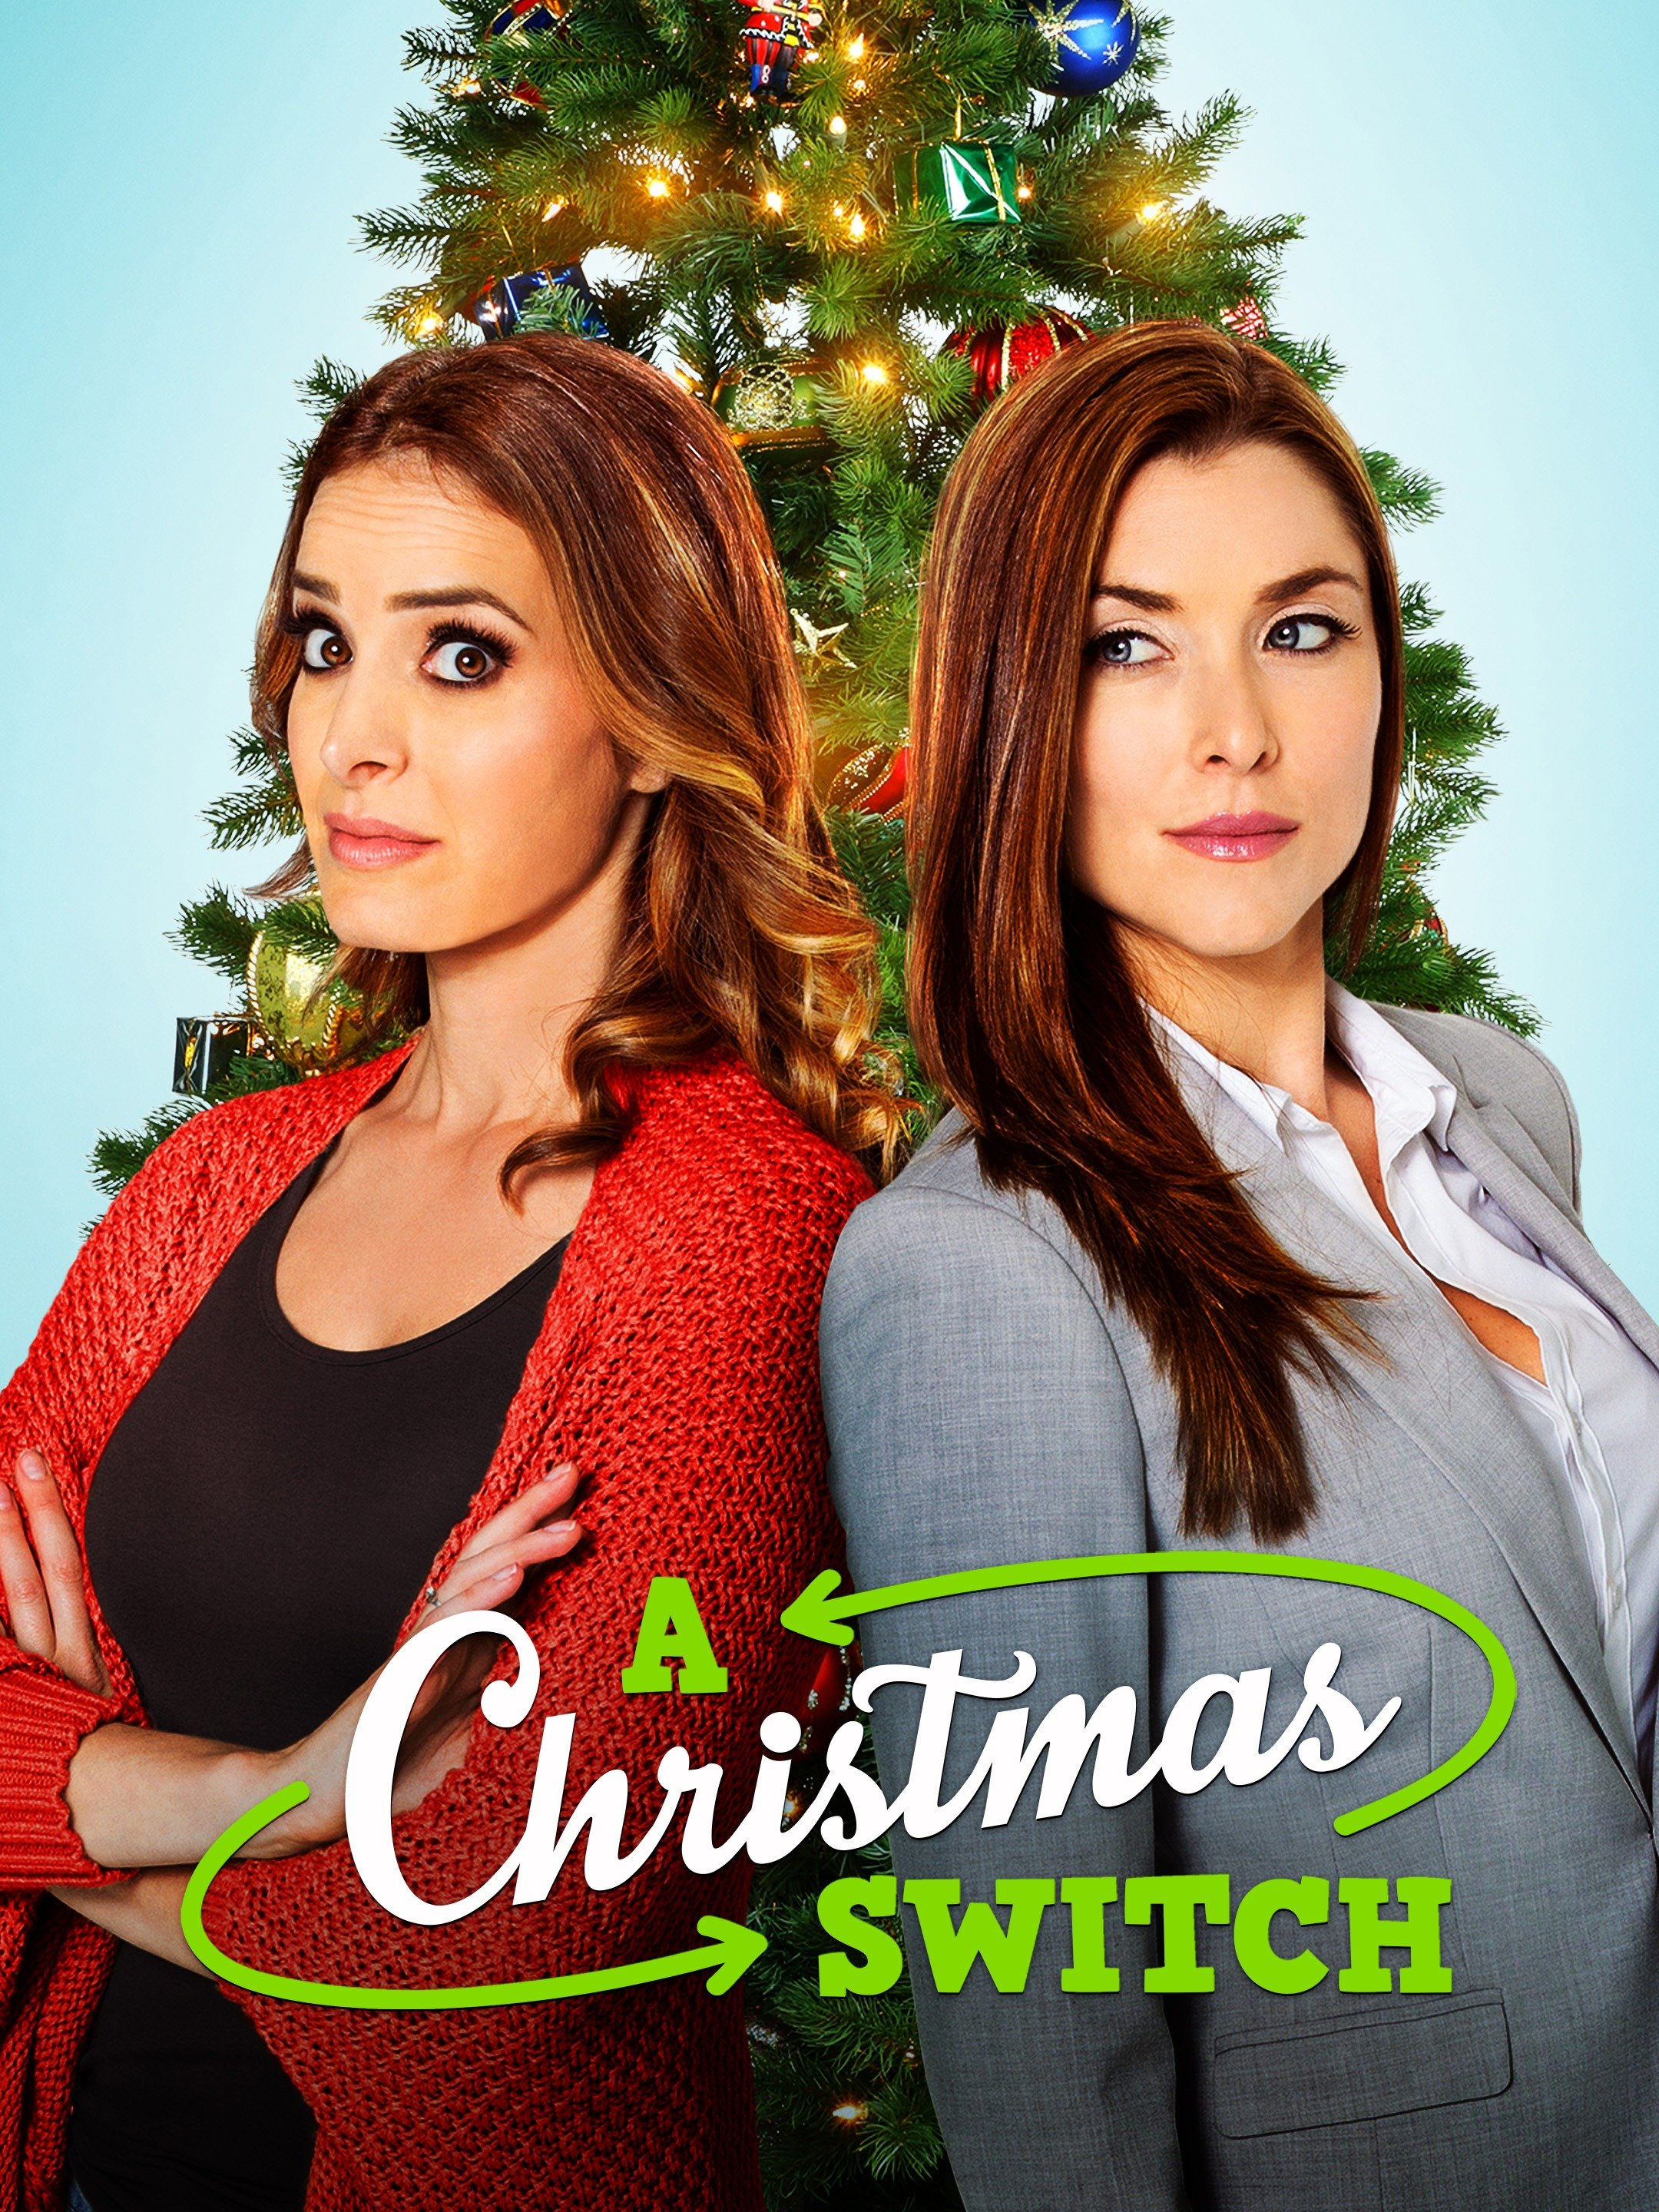 The Christmas Switch Cast 2021 A Christmas Switch 2018 Rotten Tomatoes